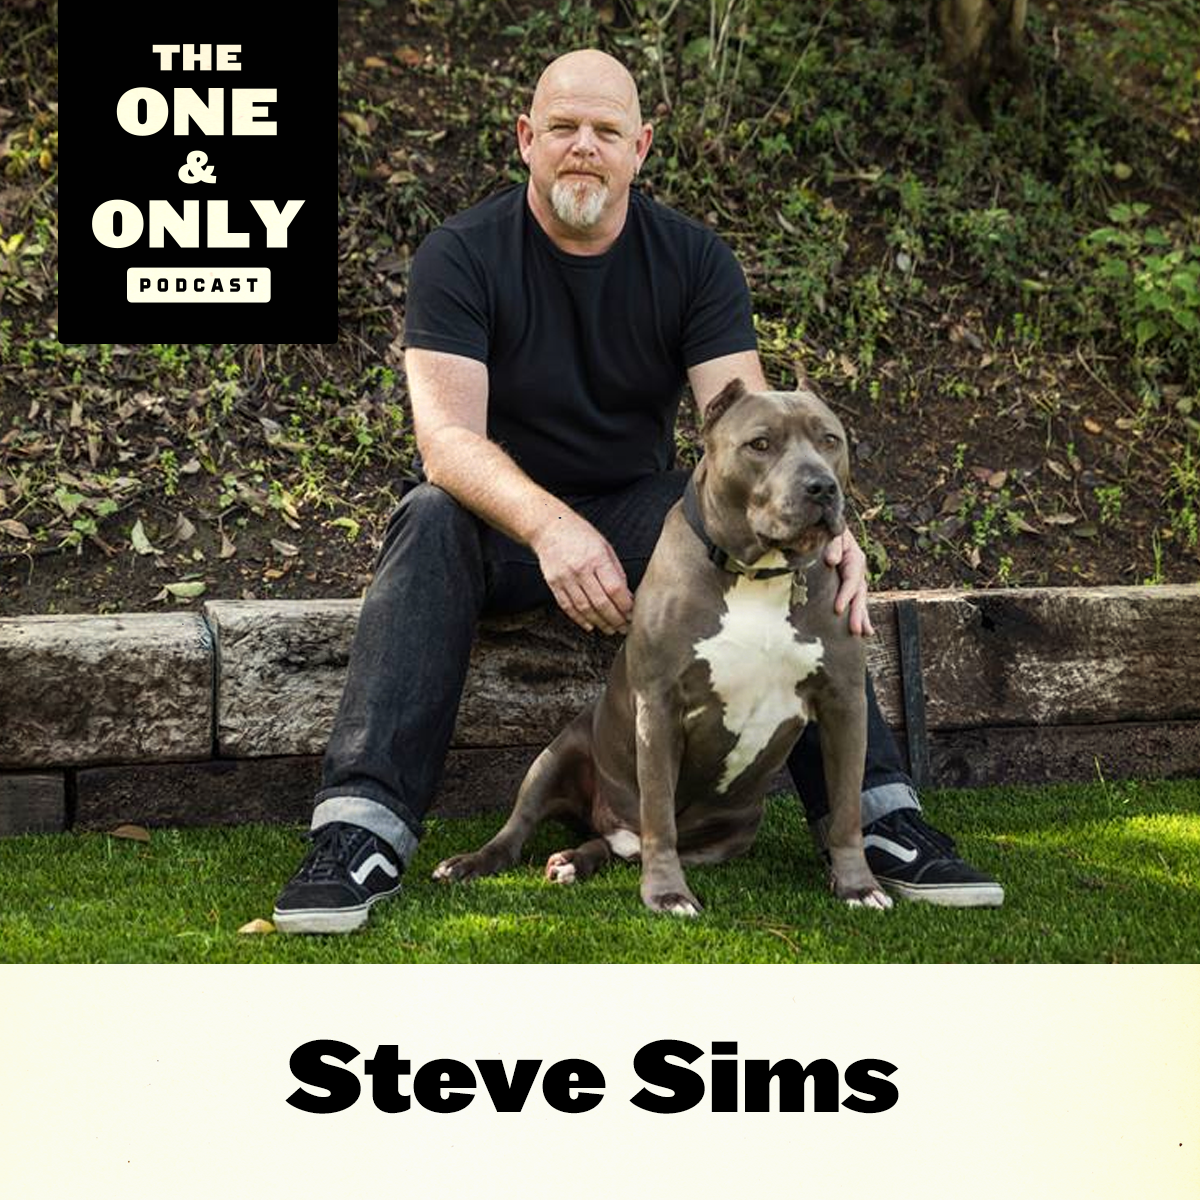 Steve Sims on The One & Only with Mark Shapiro